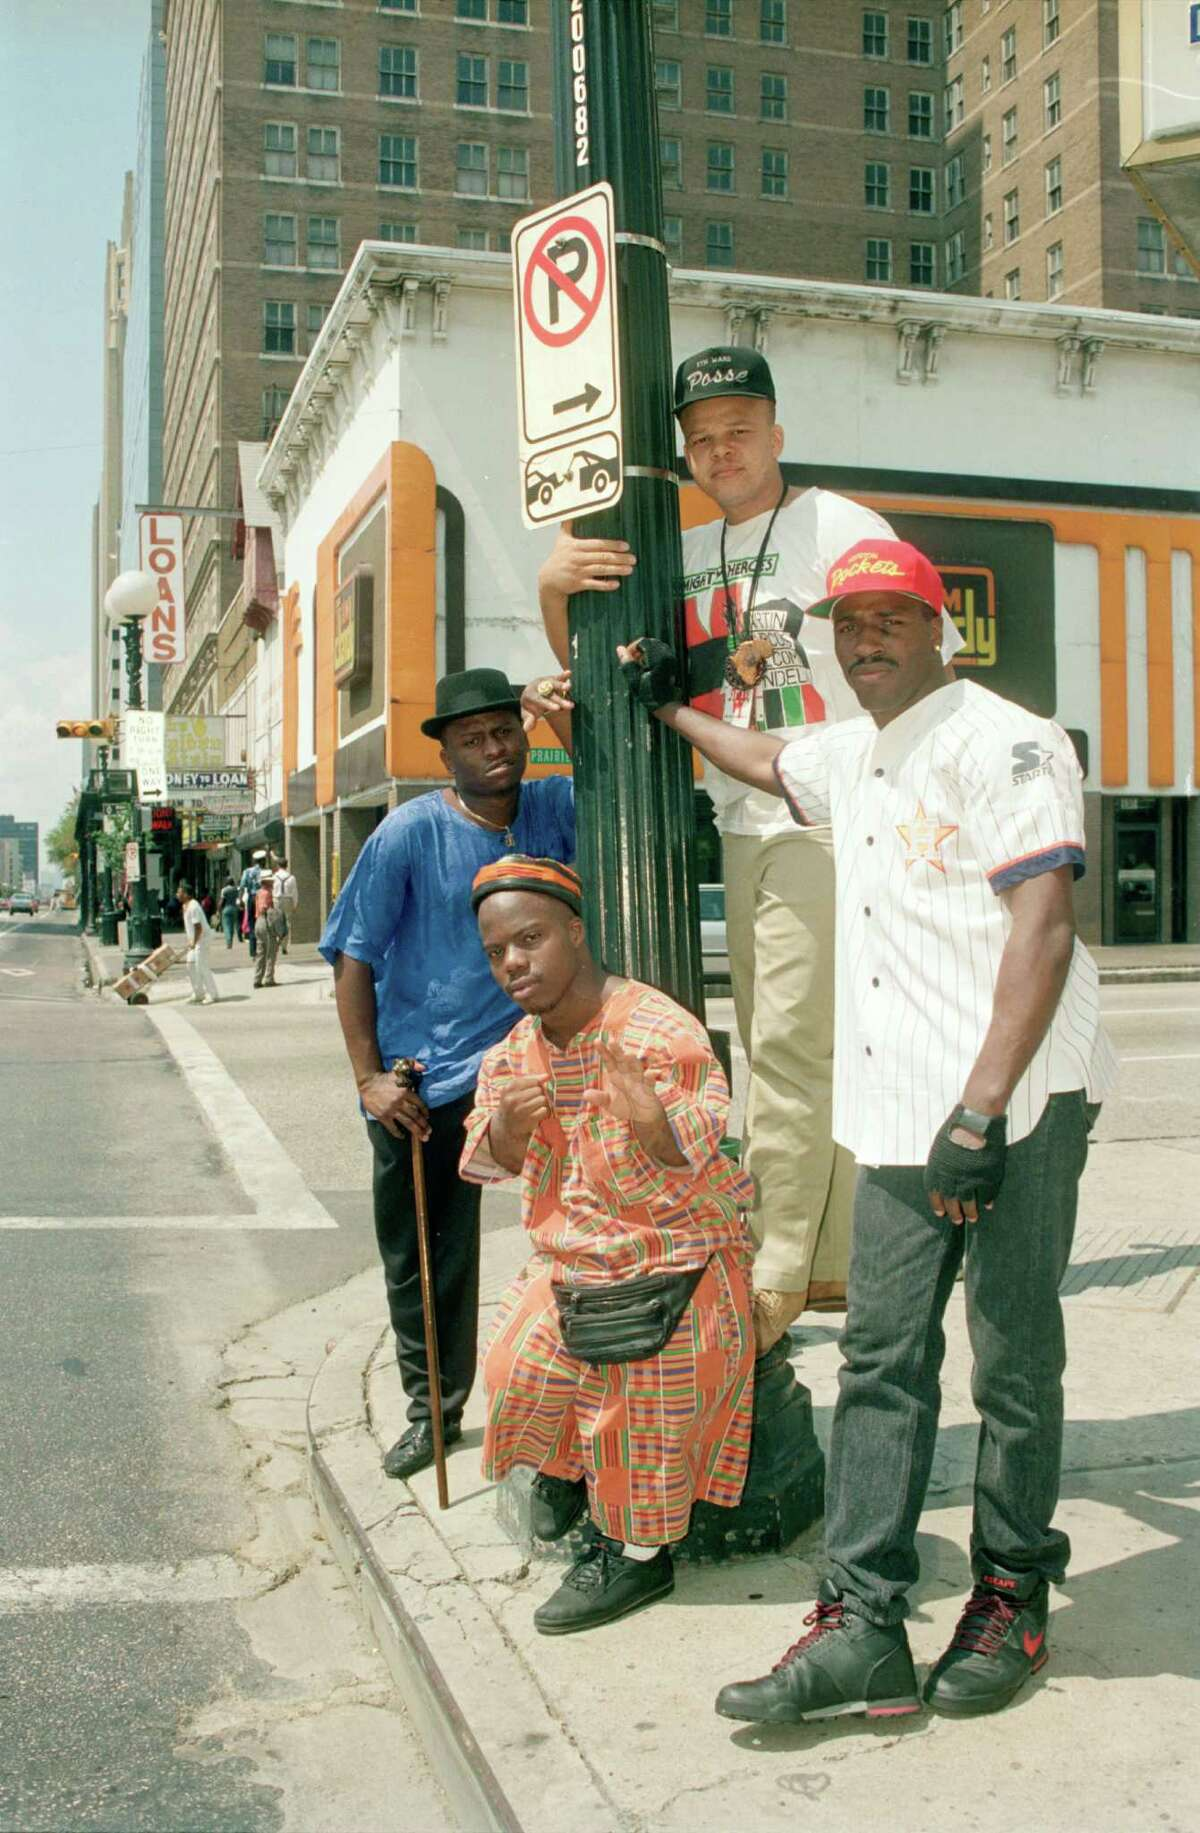 The Geto Boys in 1990: (l-r) Akshen / Scarface, D. J. Ready Red, Bushwick, and Willie D.